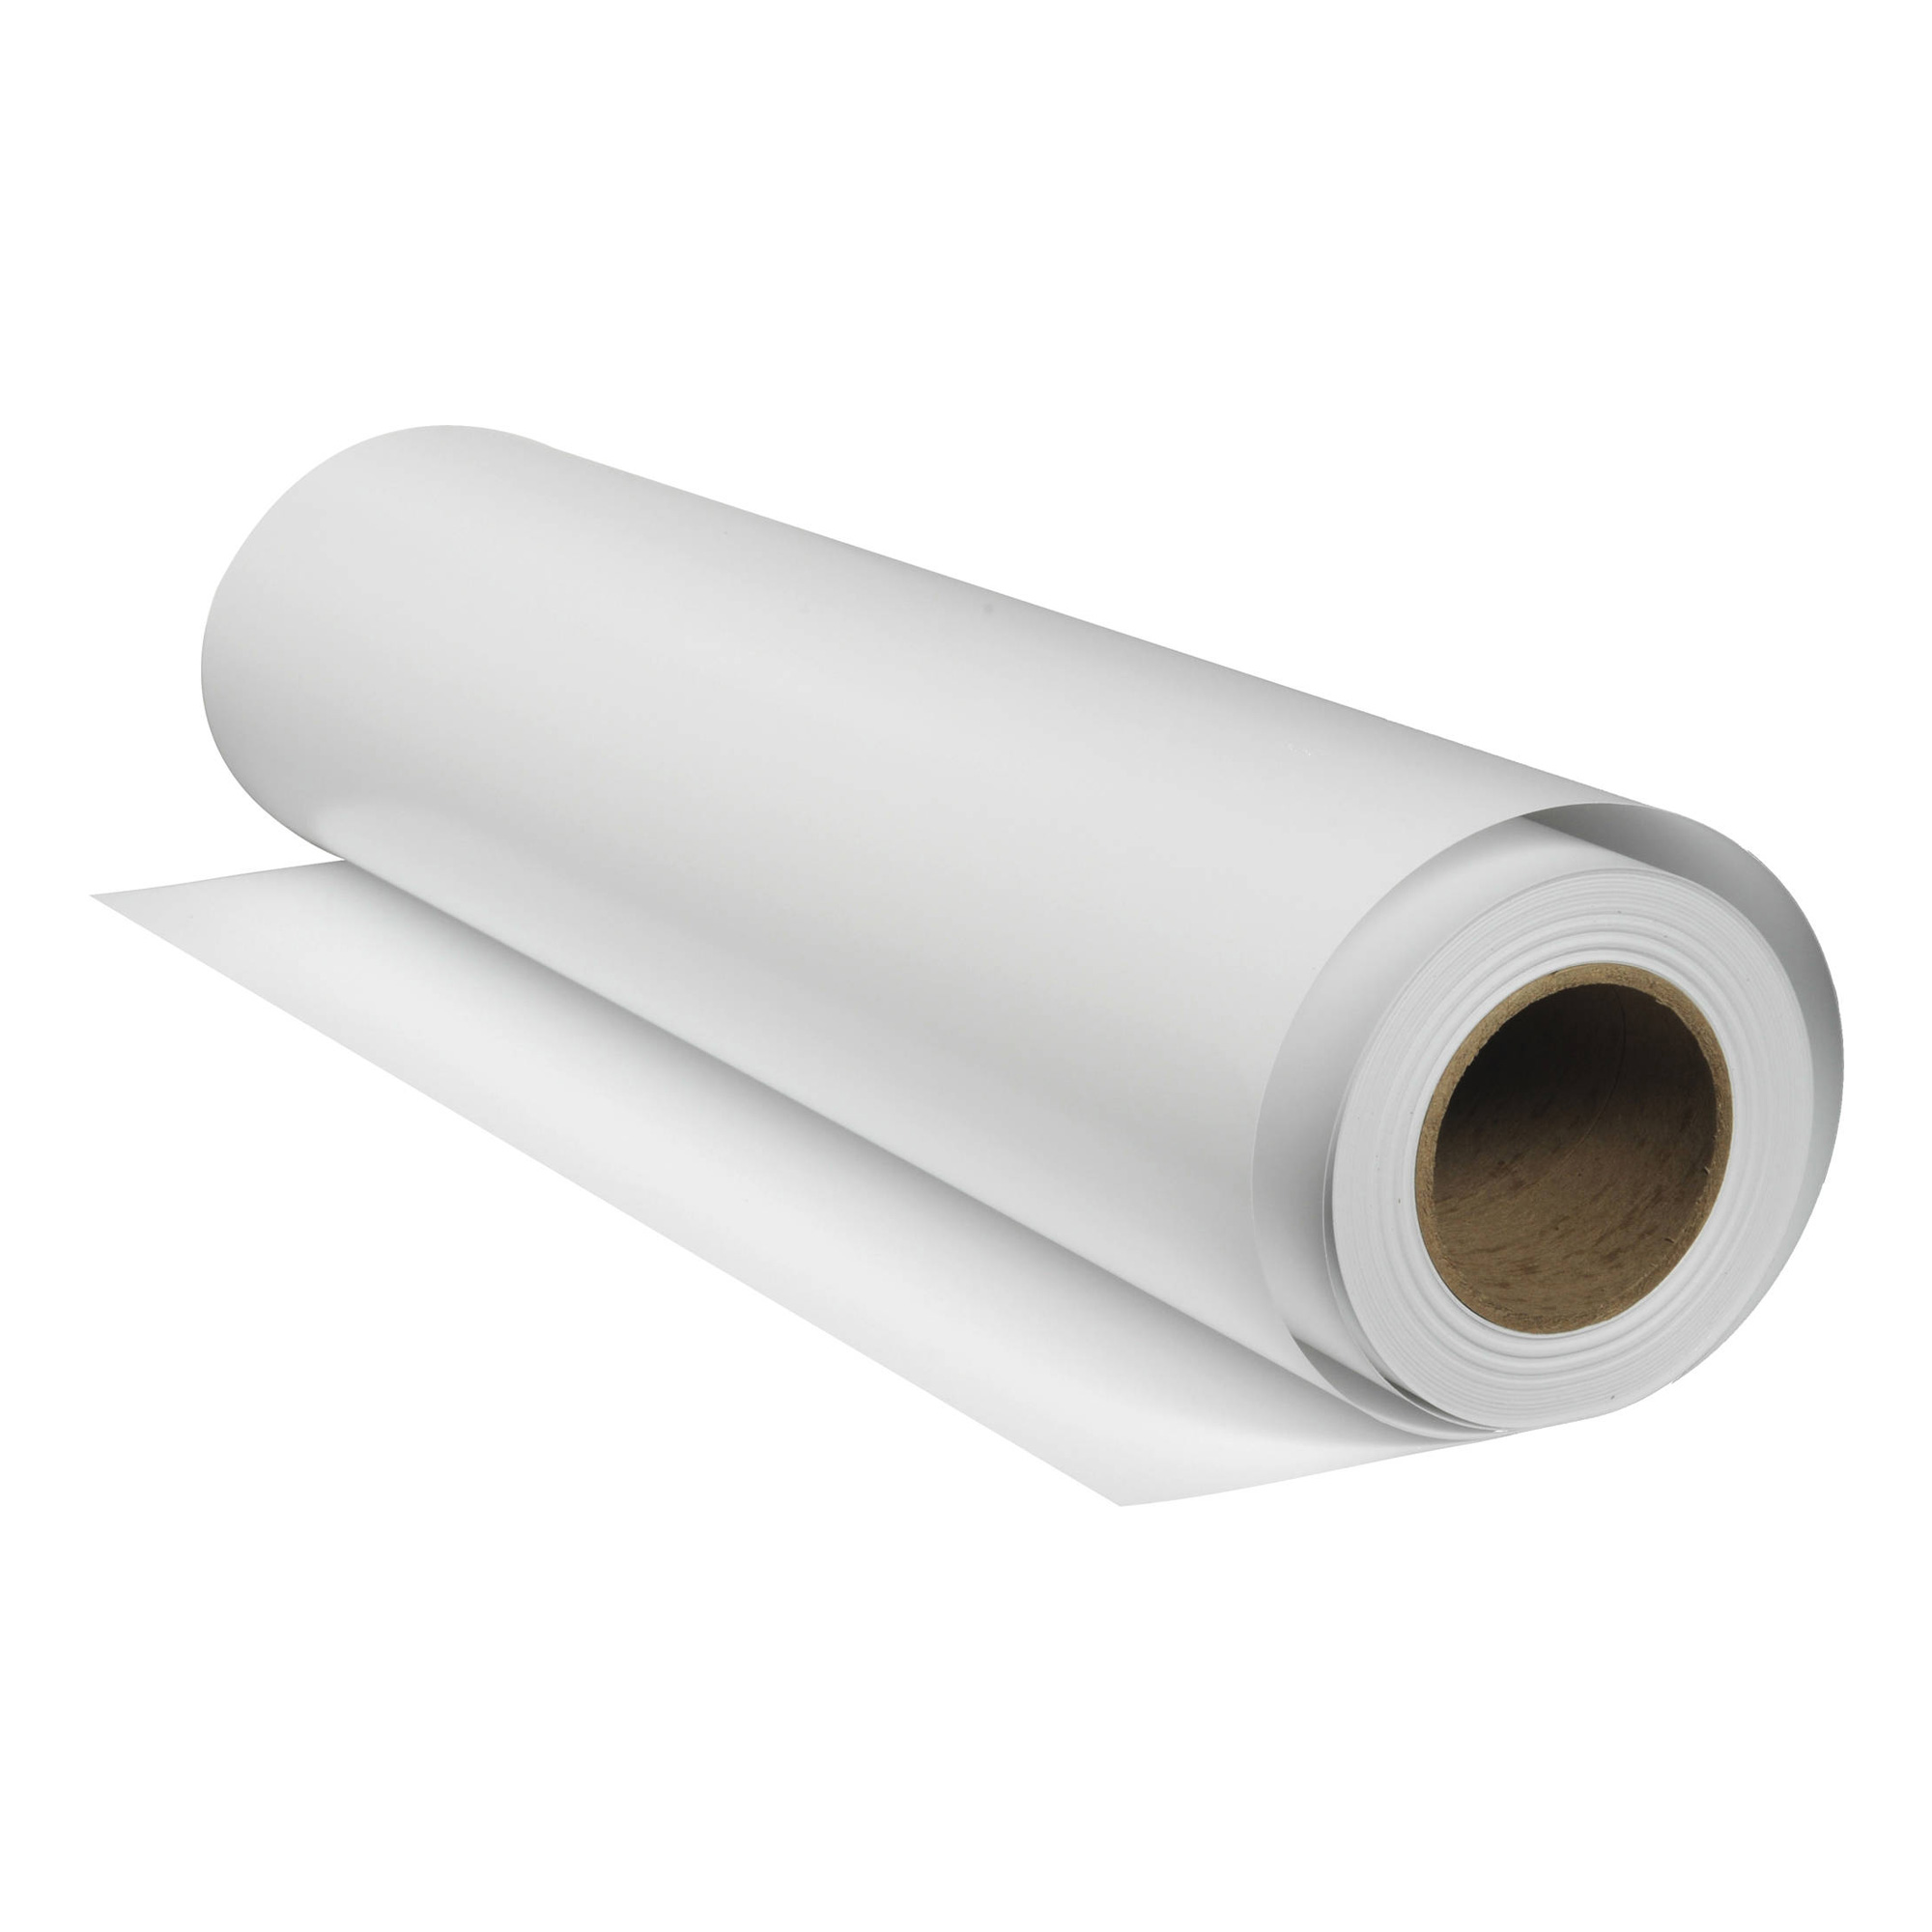 44 In. x 50 Ft. Legacy Baryta Paper Roll